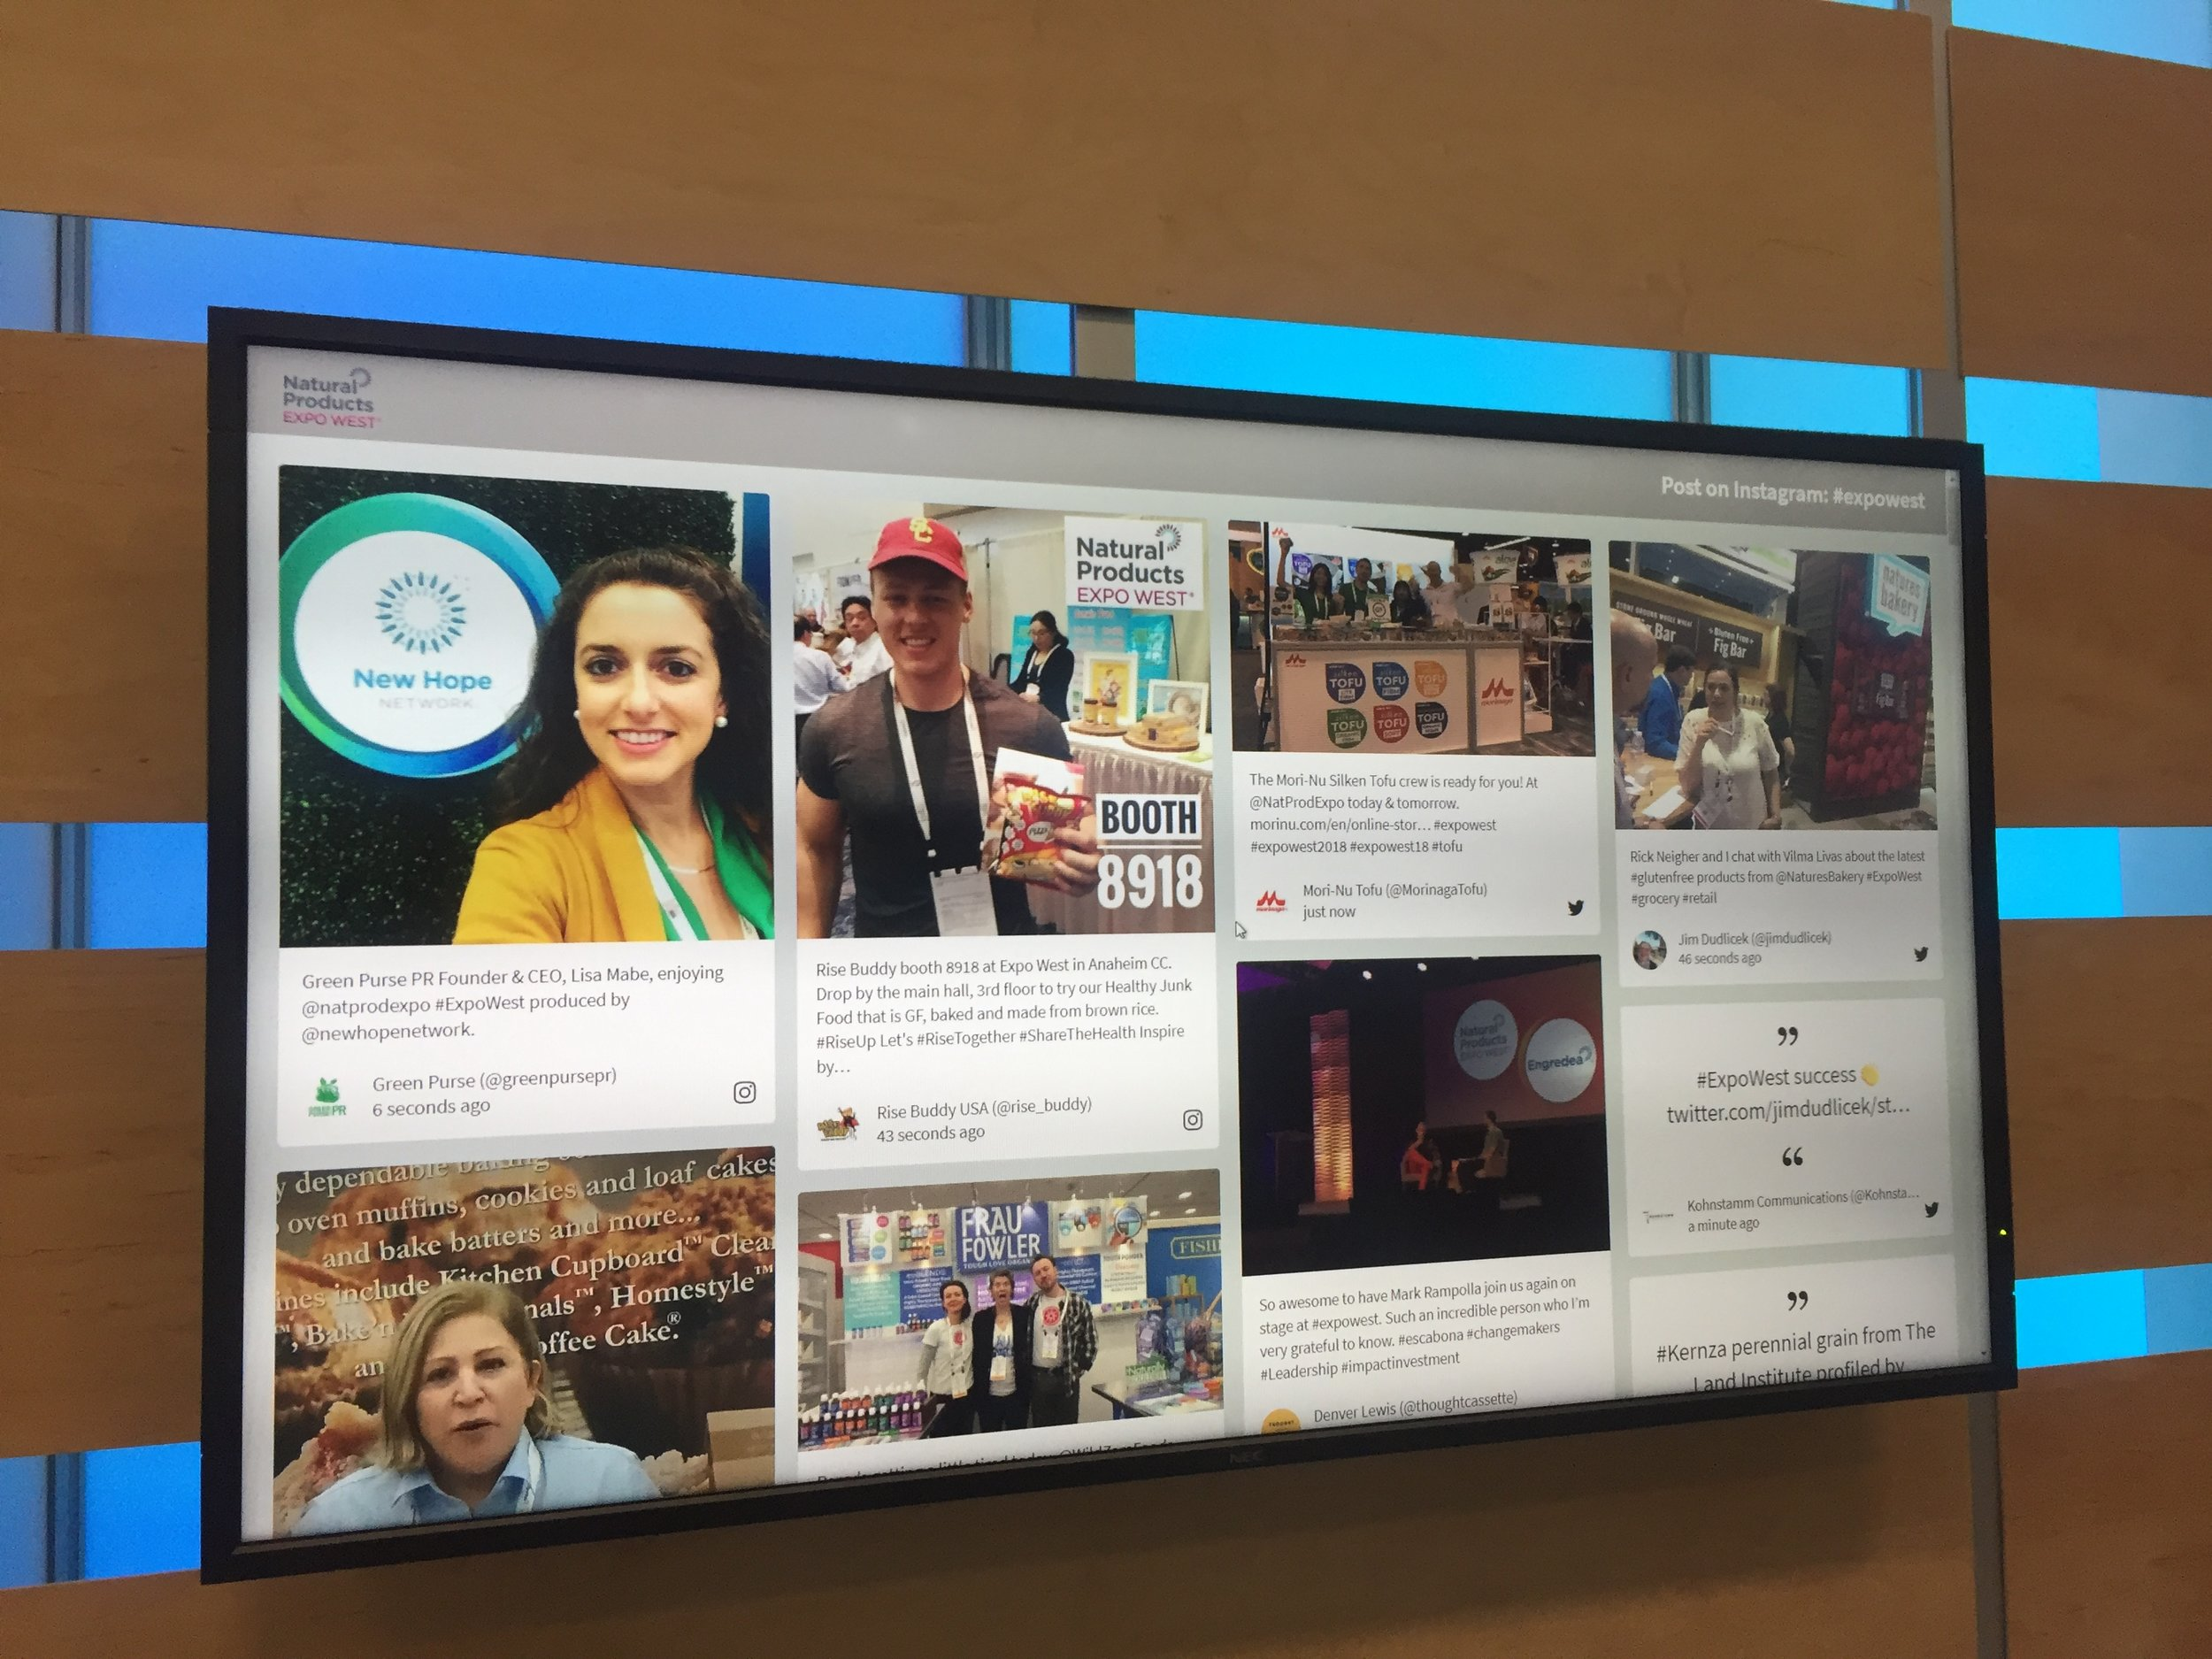 Made the social media visualizer board at Expo West.